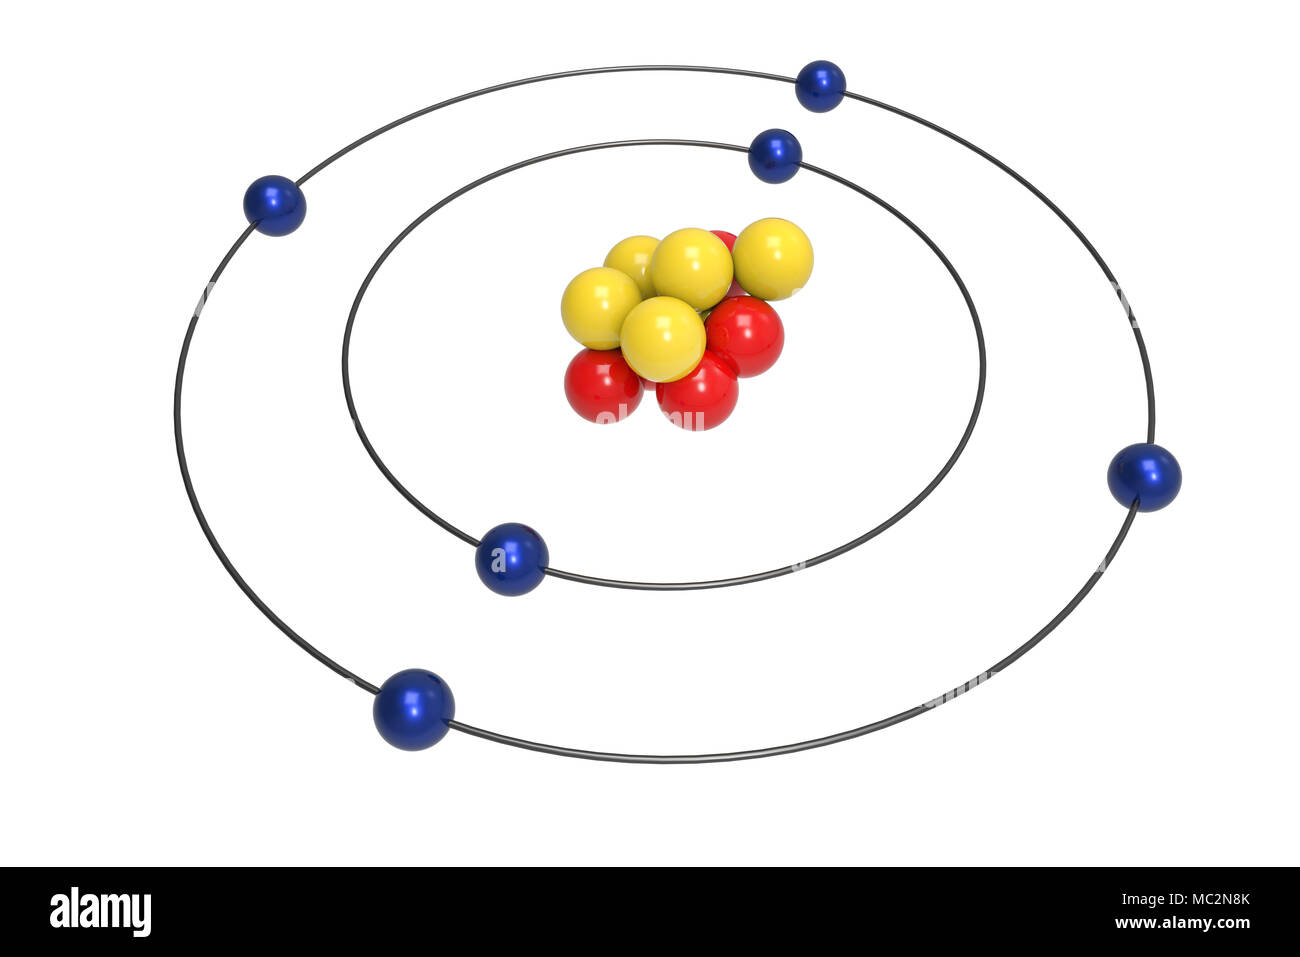 hight resolution of bohr model of carbon atom with proton neutron and electron science and chemical concept